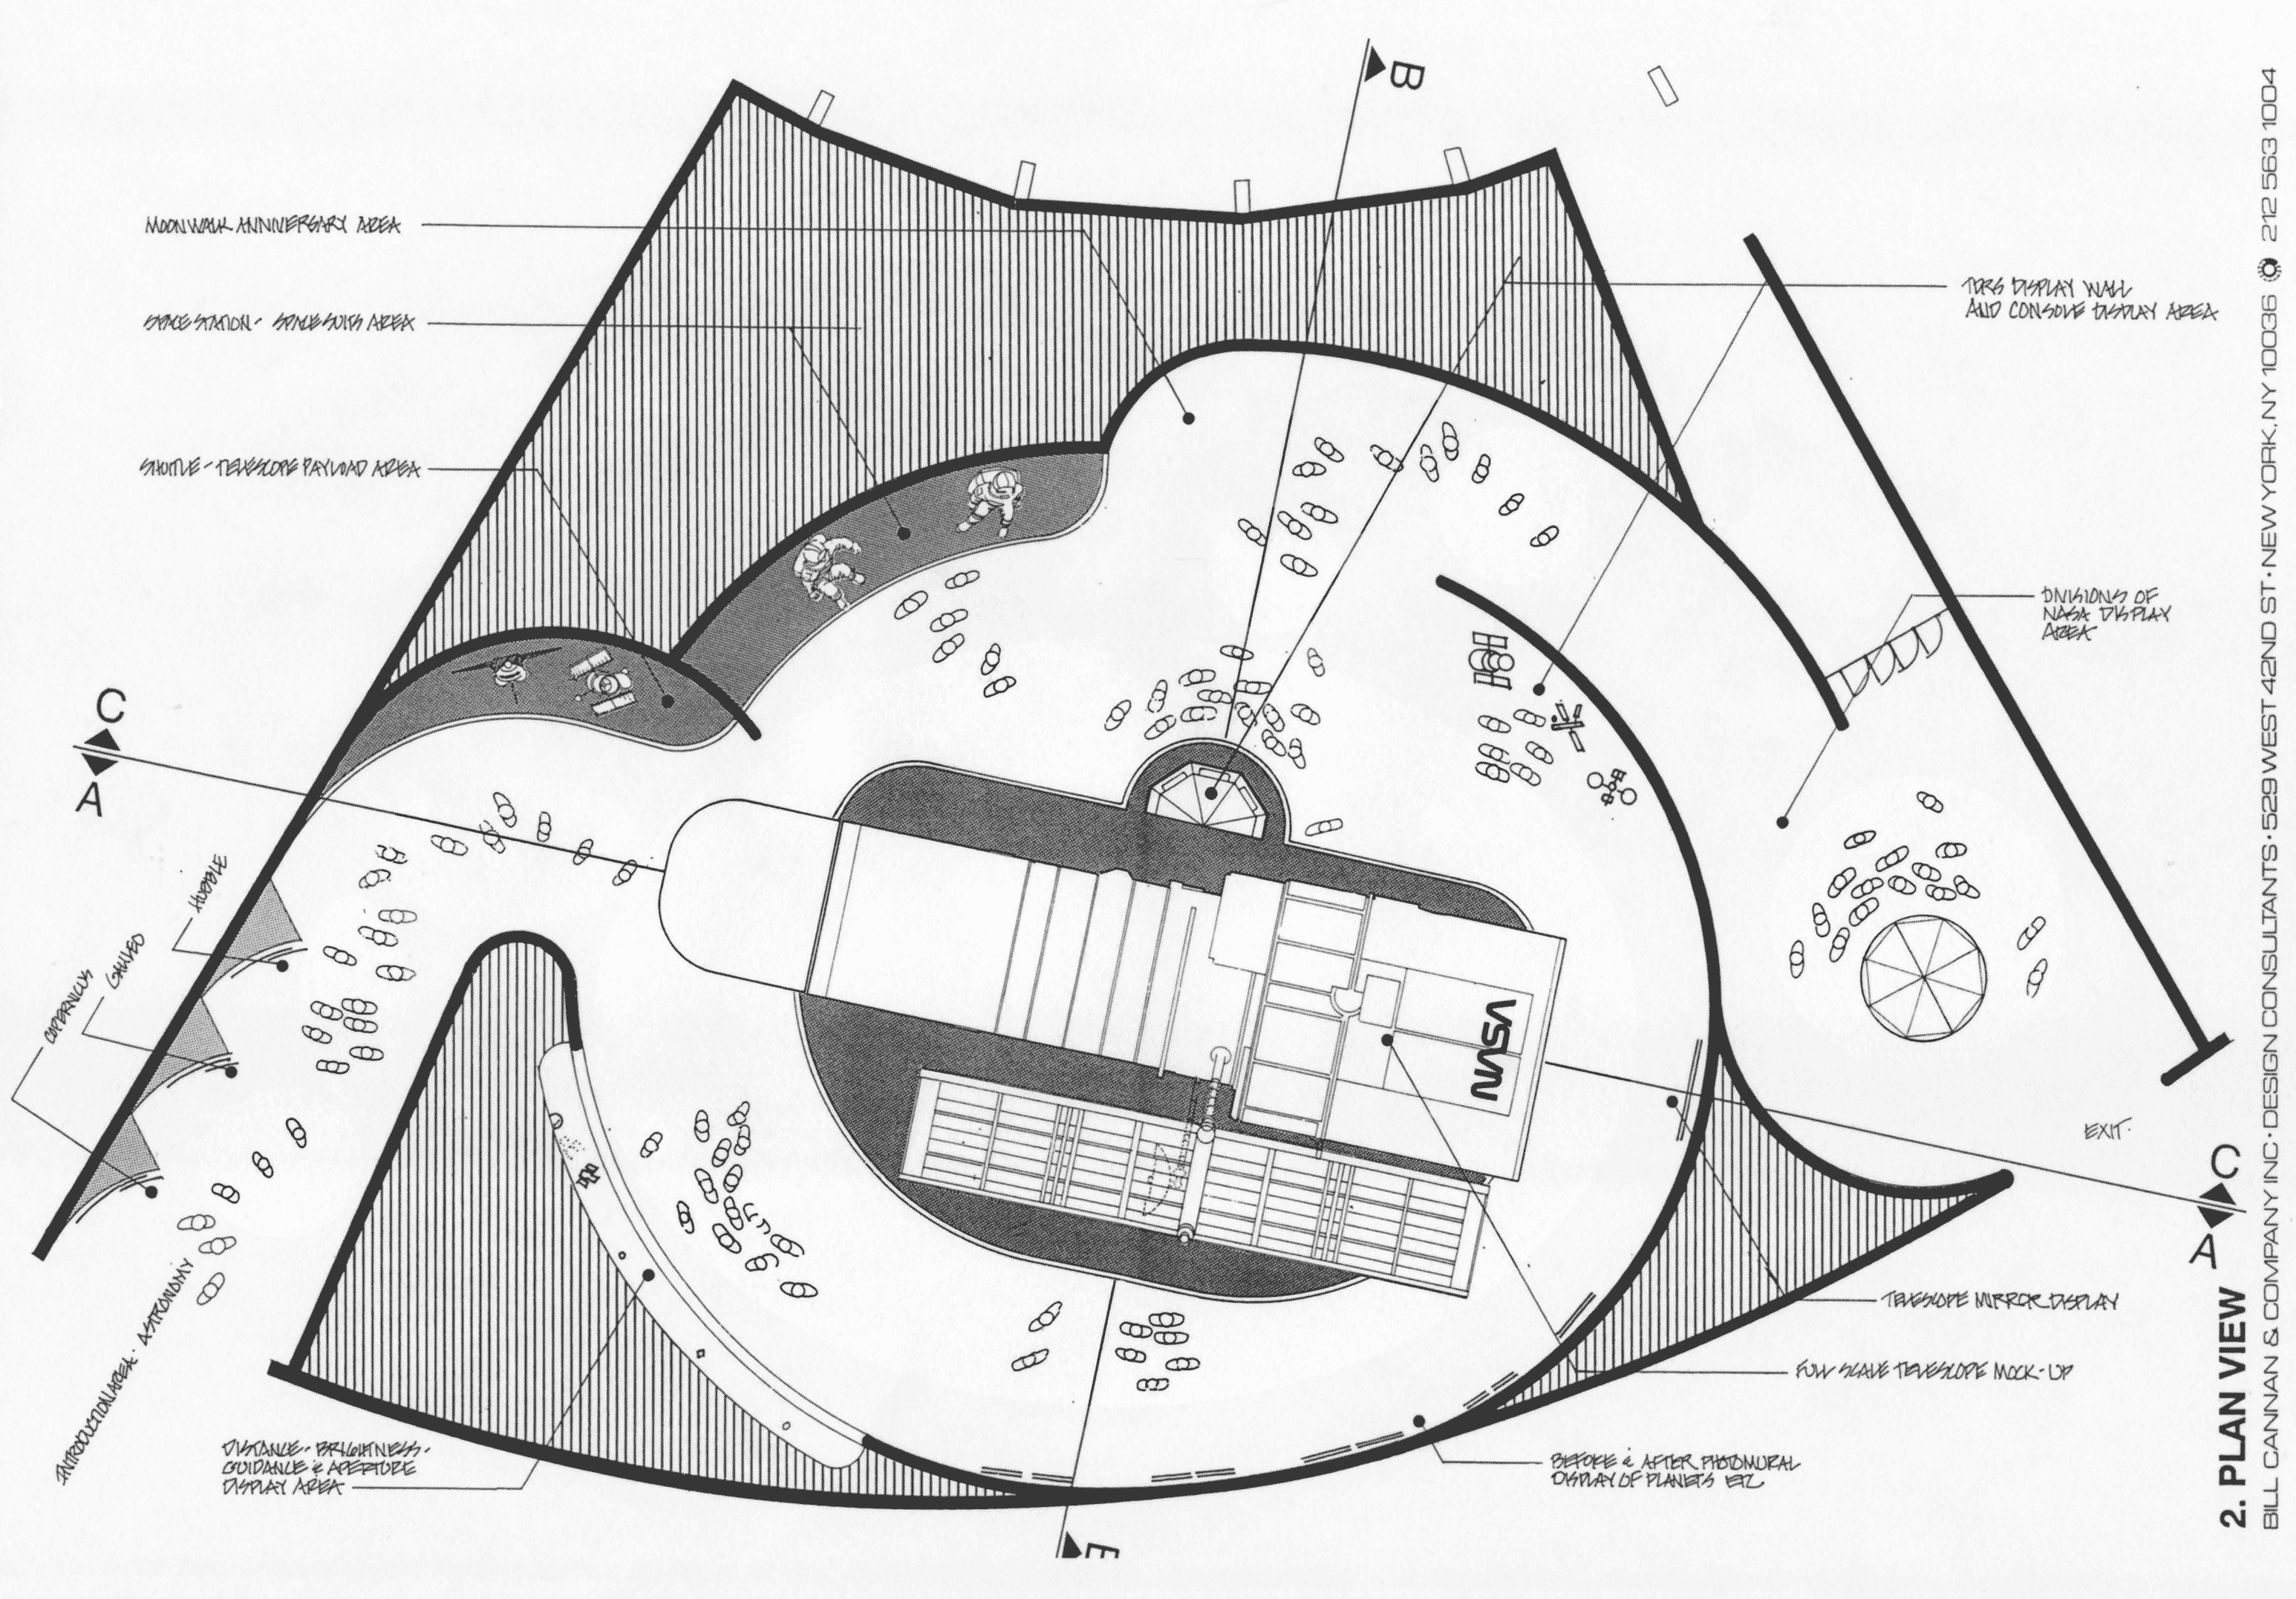 Drawn plan of the exhibit